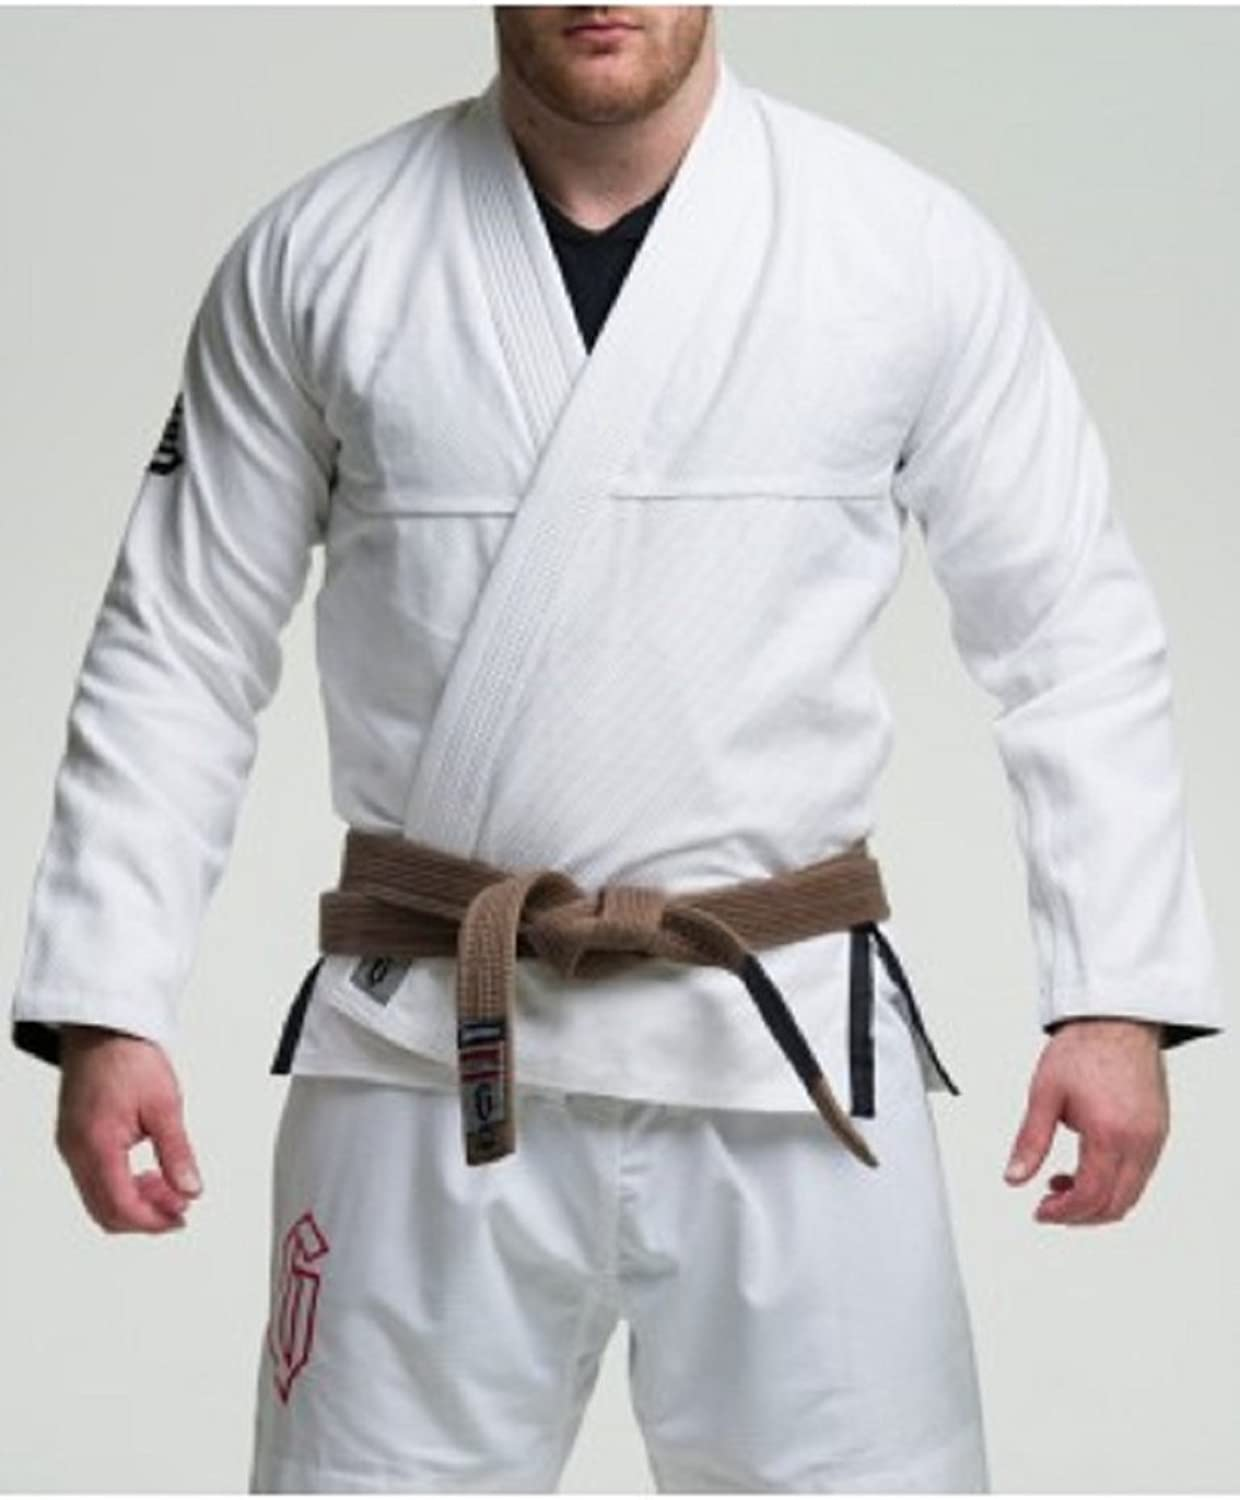 Gameness Air Gi  BJJ Gi  Lightweight Jiu Jitsu Gi